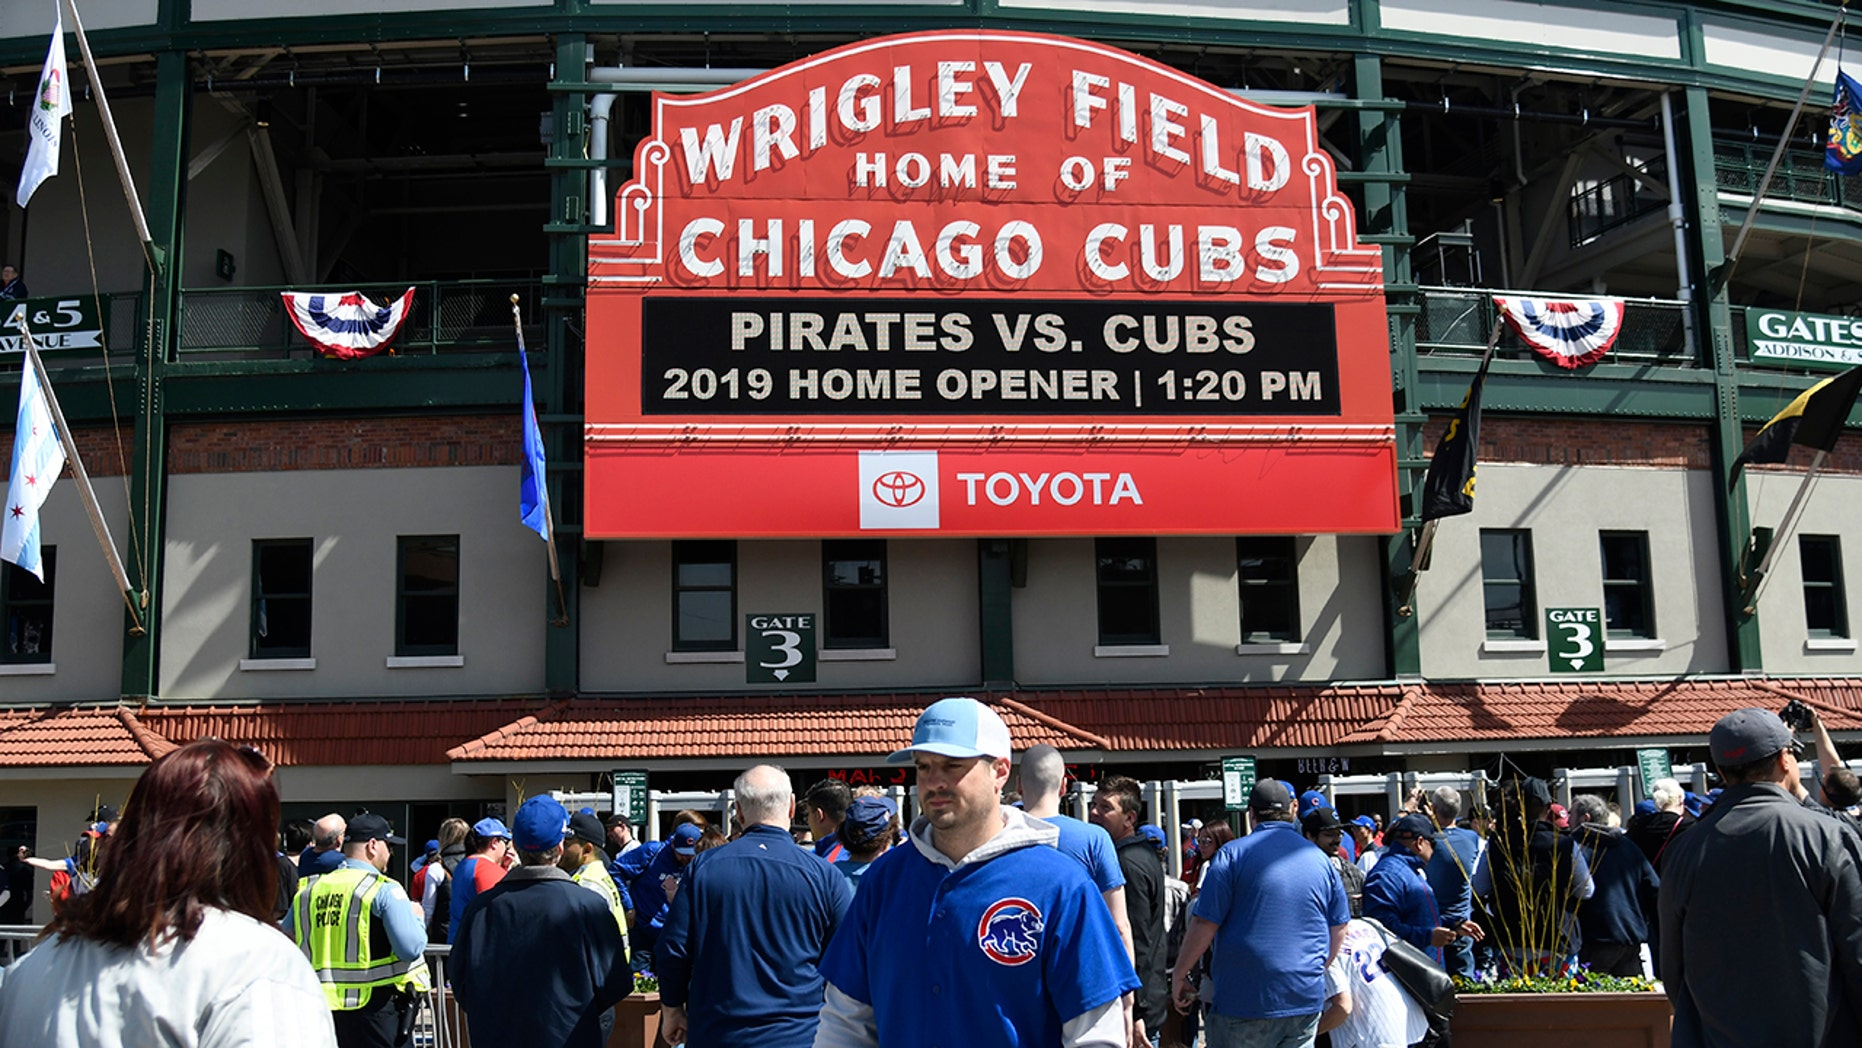 Fans walk around the ballpark before the Chicago Cubs home opening baseball game against the Pittsburgh Pirates, Monday, April 8, 2019, in Chicago.